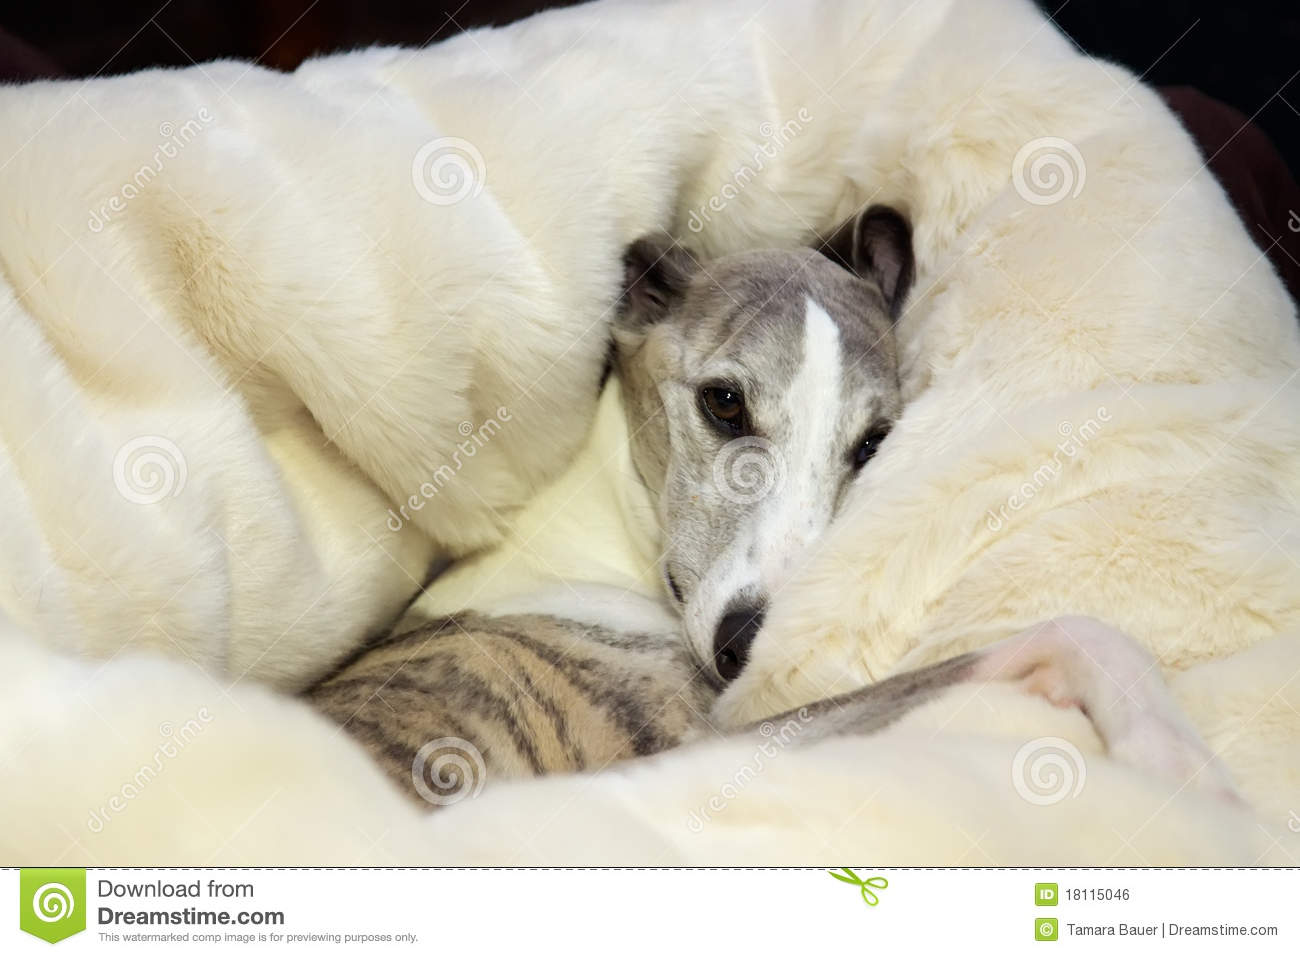 Snuggly whippet